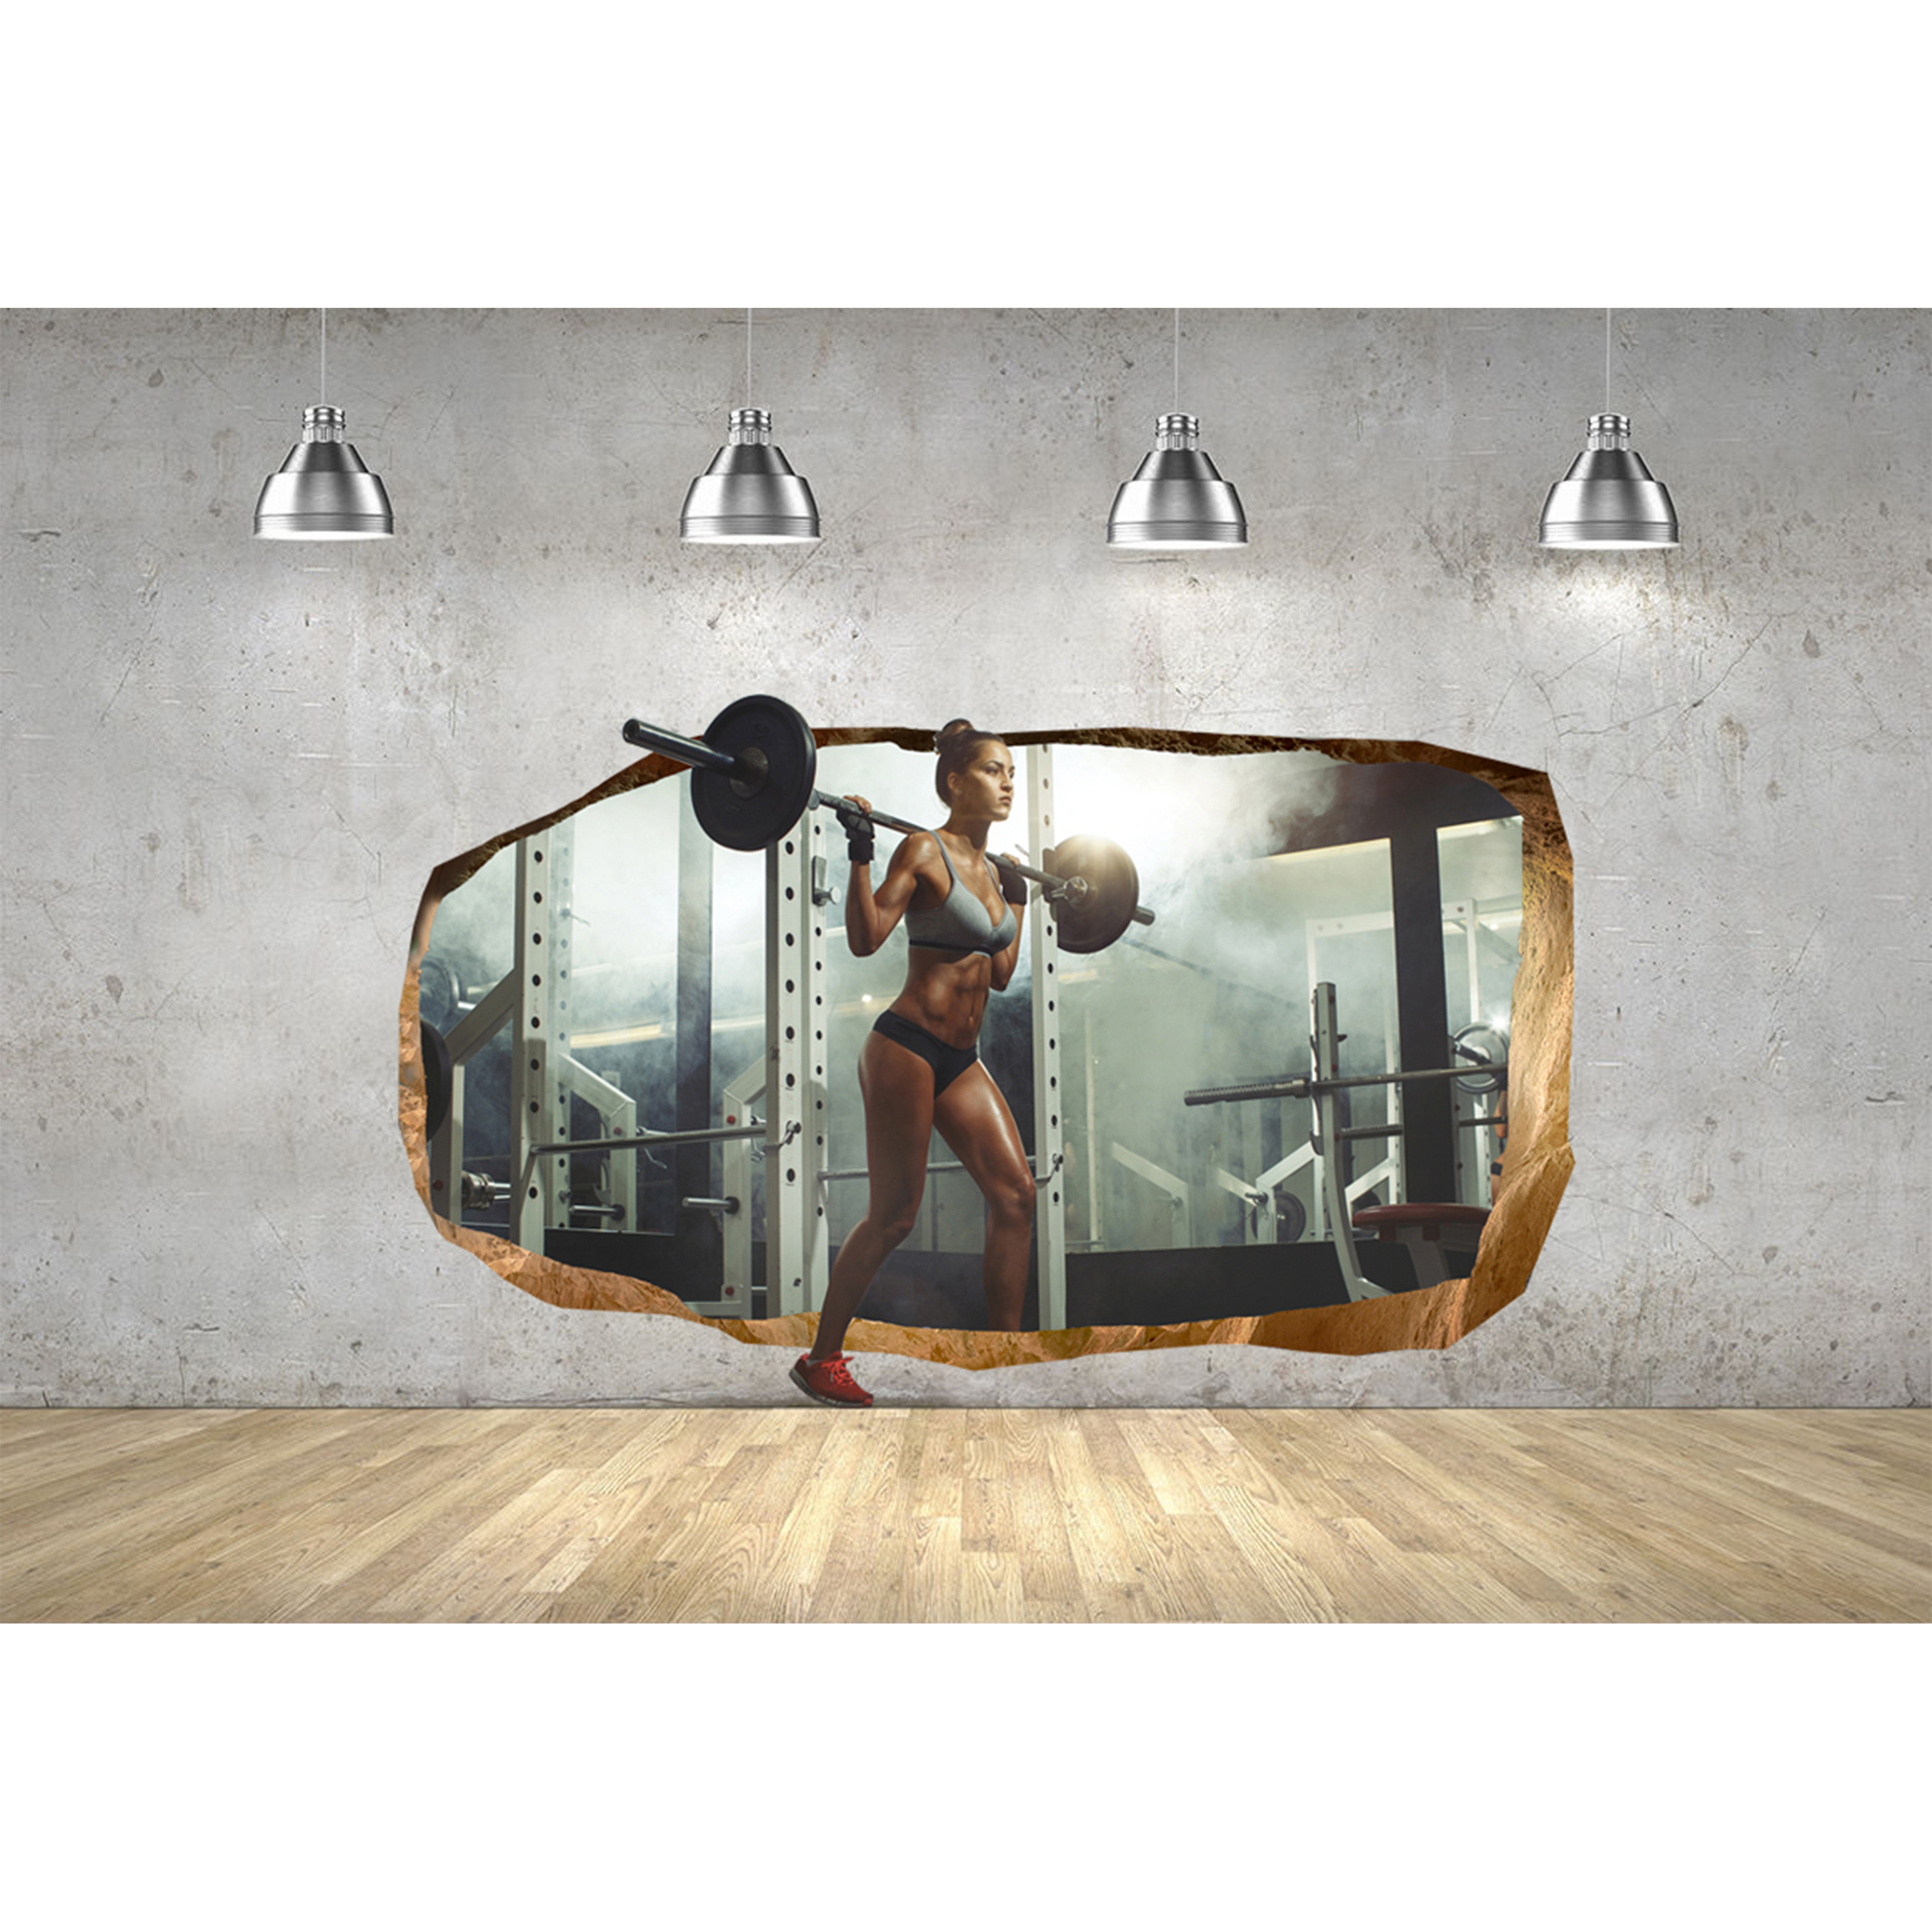 Startonight 3D Mural Wall Art Photo Decor Sexy Girl At and Gym Amazing Dual View Surprise Wall Mural Wallpaper for Bedroom Sport Wall Art Gift Large 47.24 '' By 86.61 ''